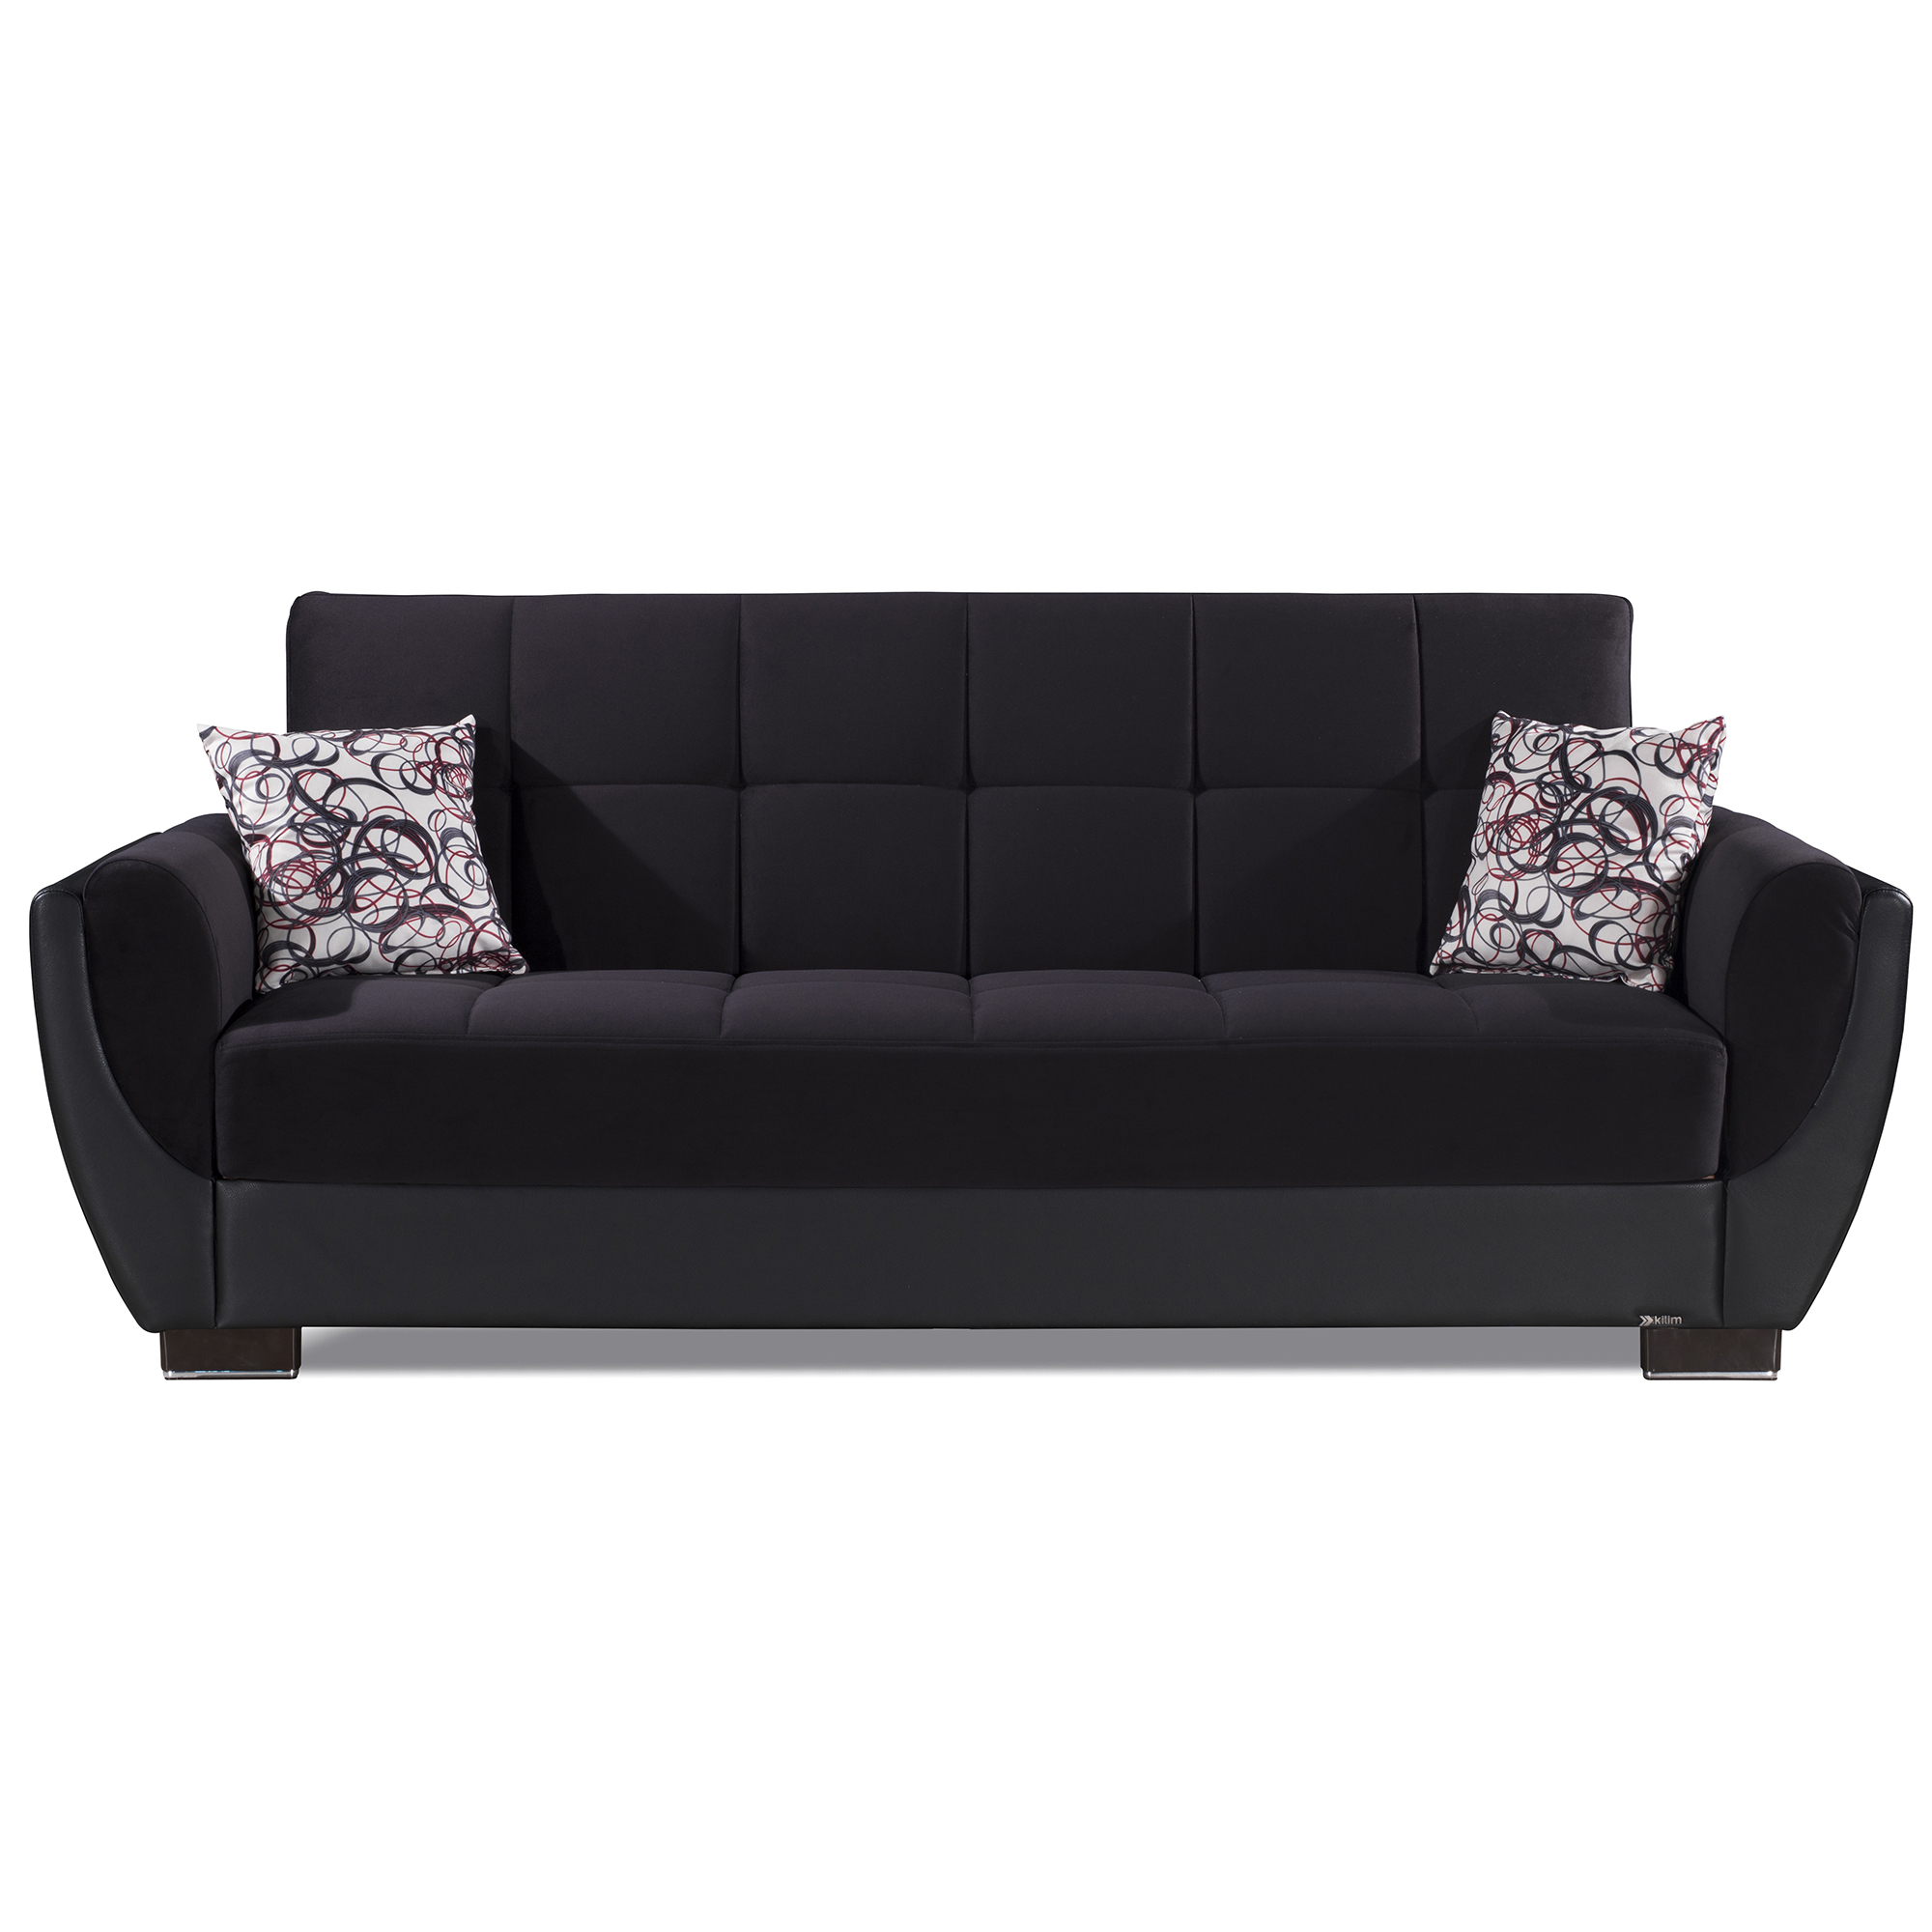 Ottomanson Armada Air Fabric Upholstery Sleeper Sofa Bed For Hartford Storage Sectional Futon Sofas (View 4 of 15)